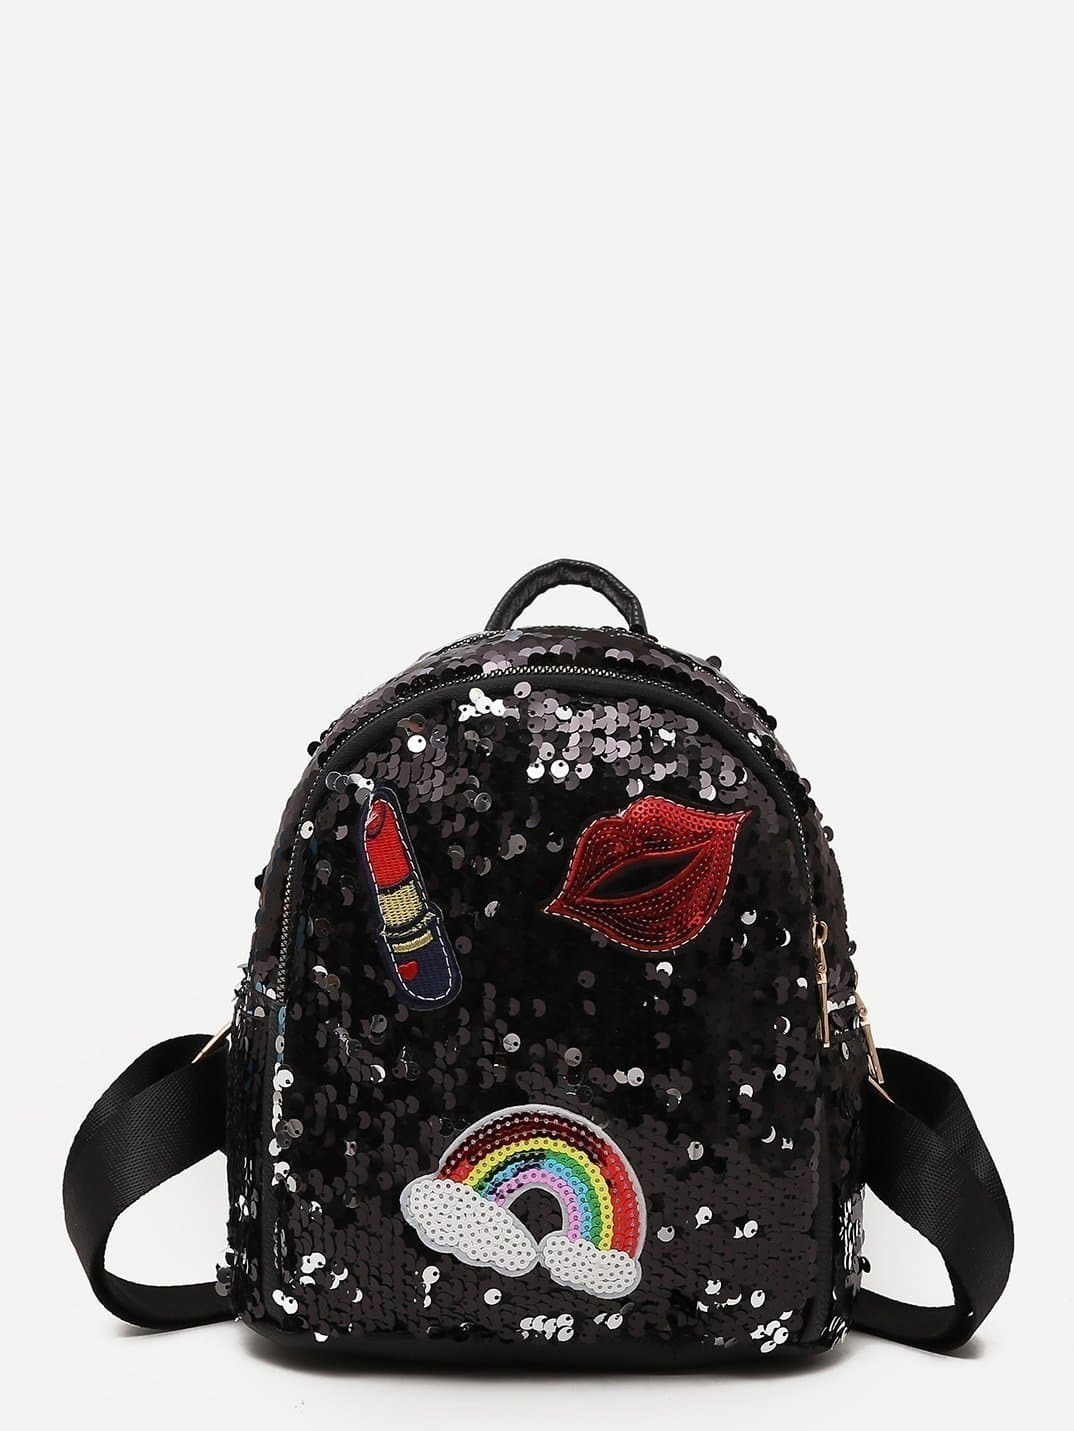 Sequin Decor Embroidery Backpack sequin